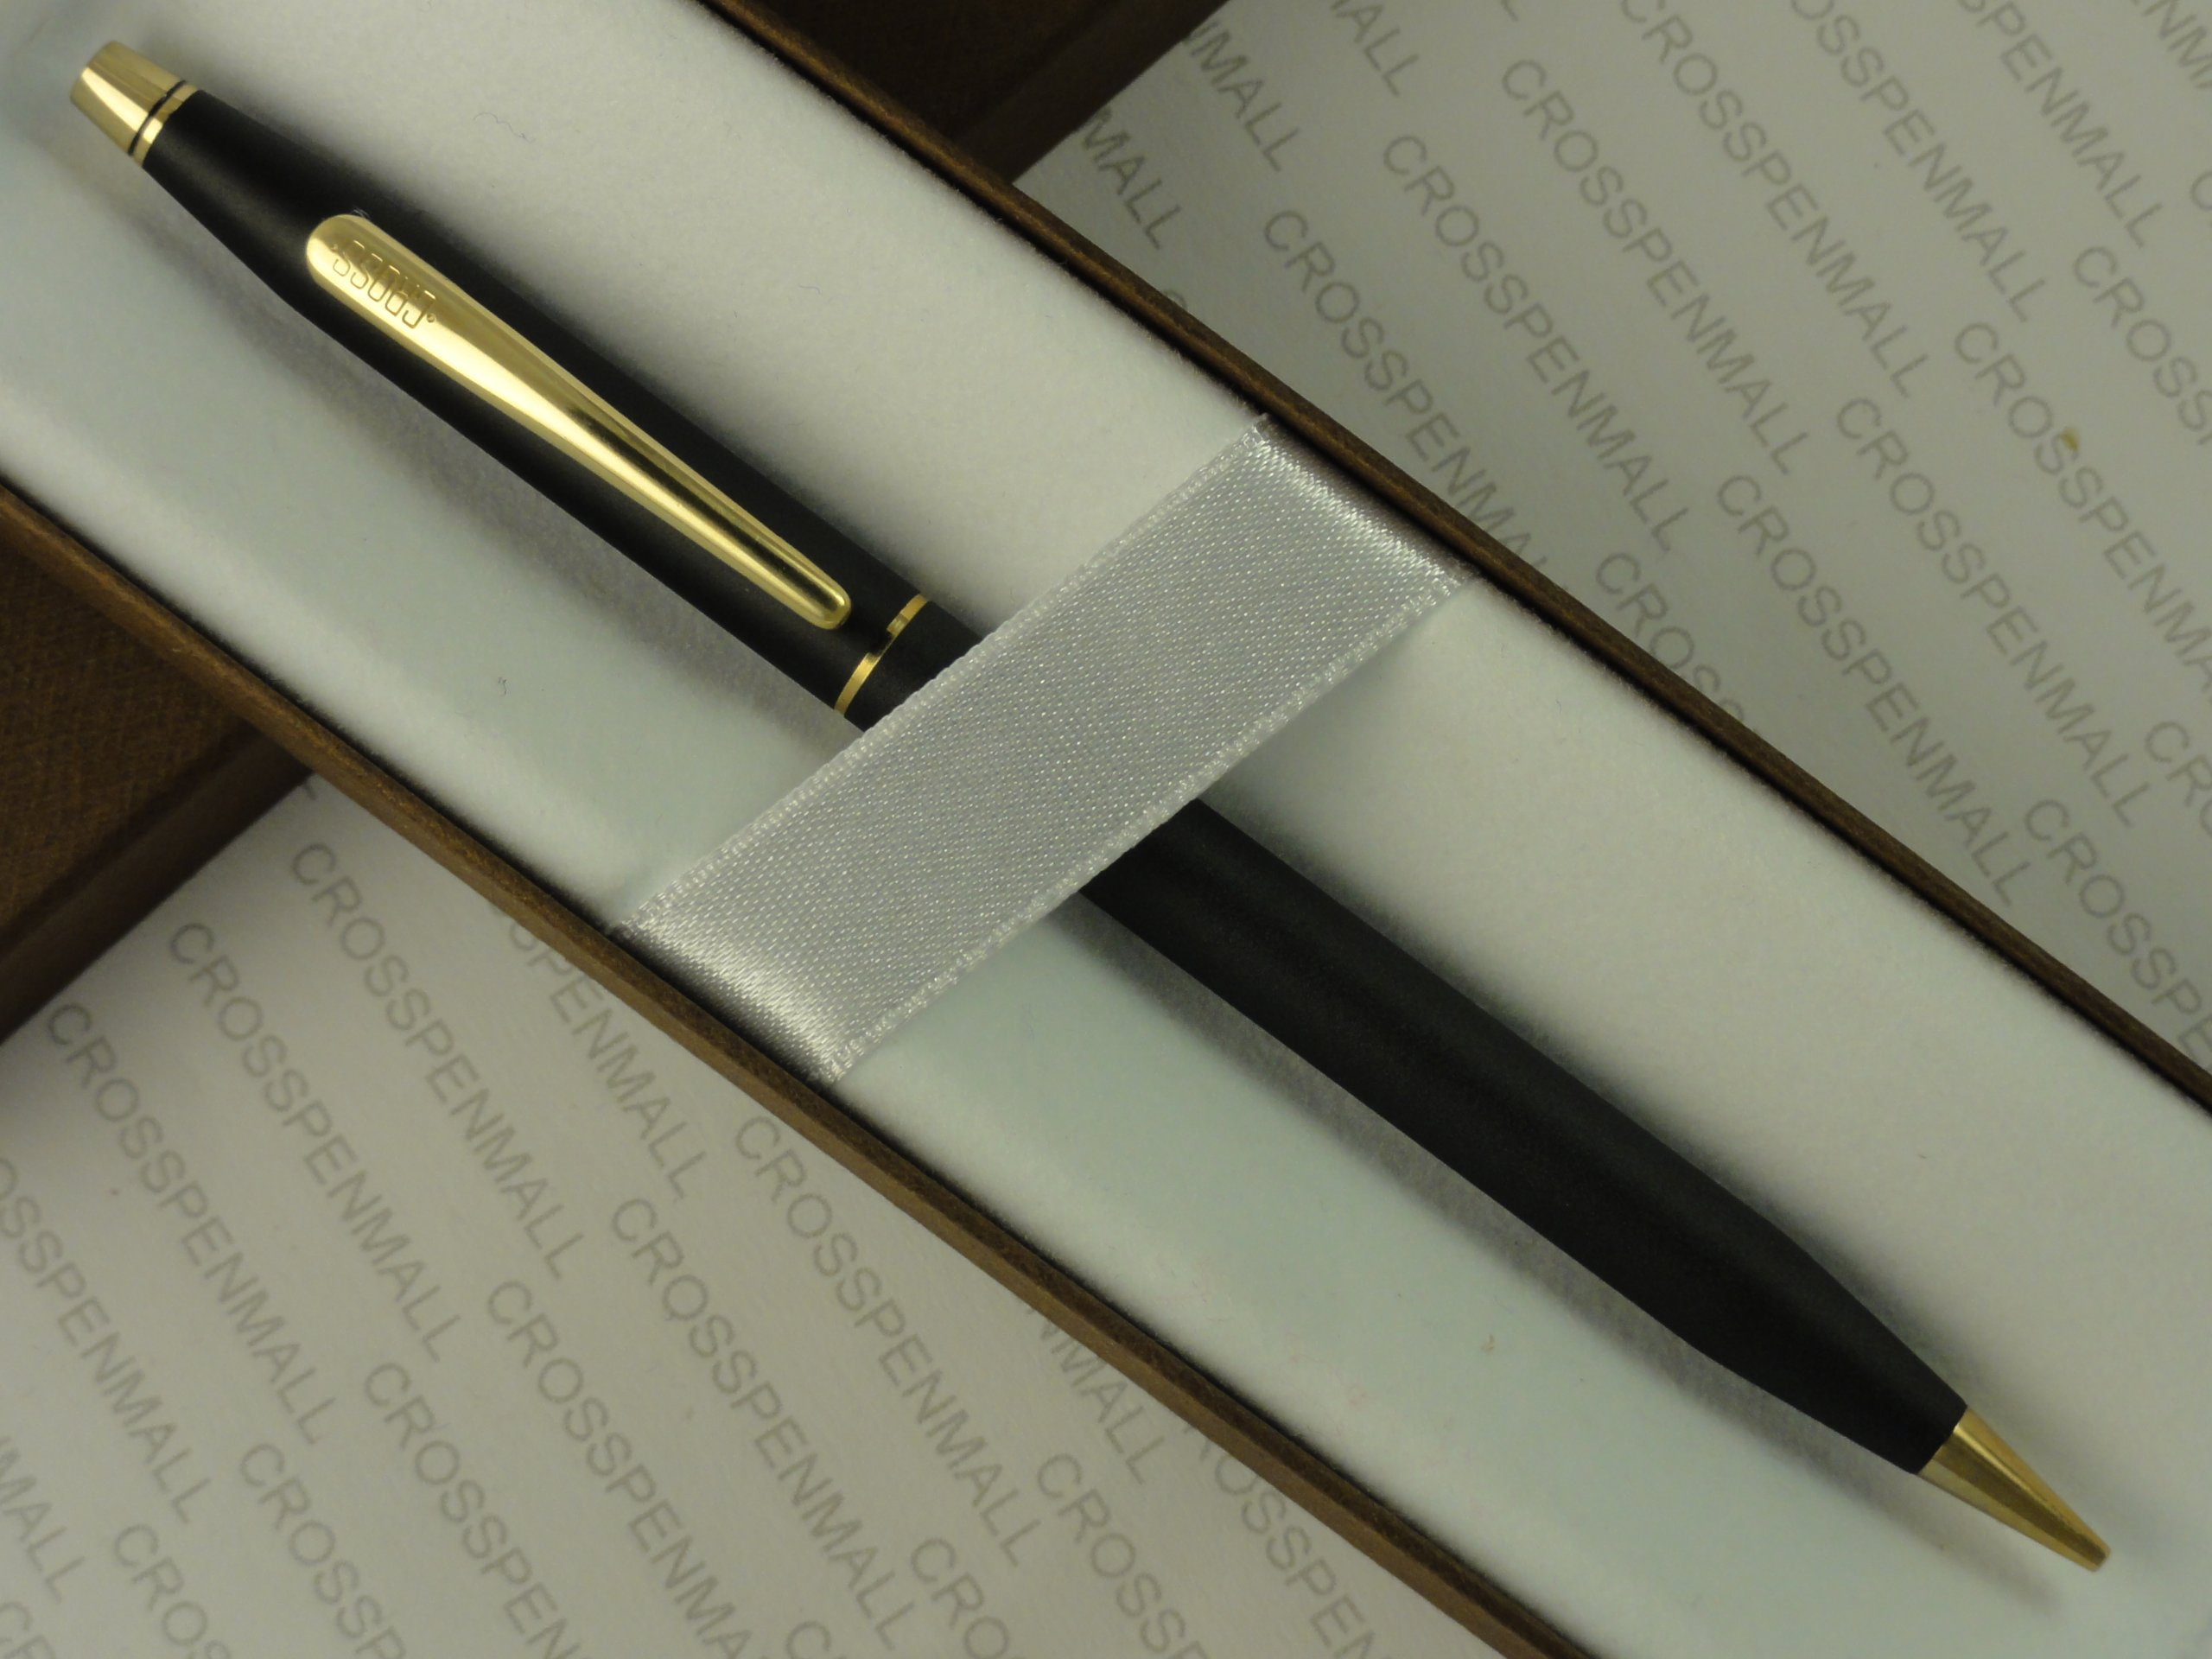 Cross Made in the USA Century Classic Satin Matte Black and 23k Gold with 0.5MM Lead Pencil